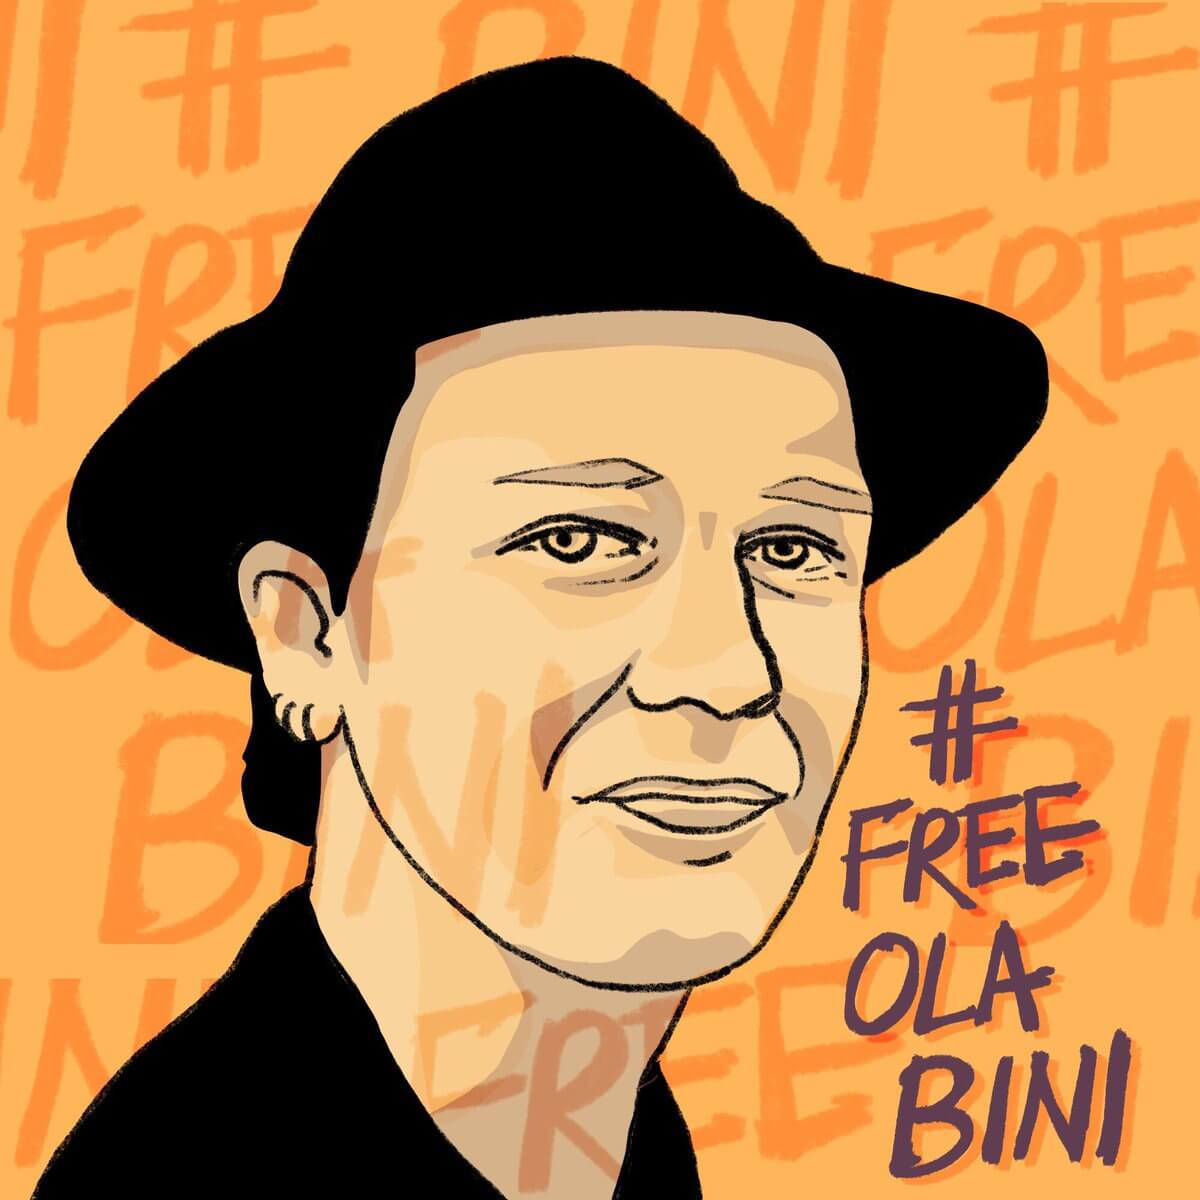 Ola Bini arrested in Ecuador